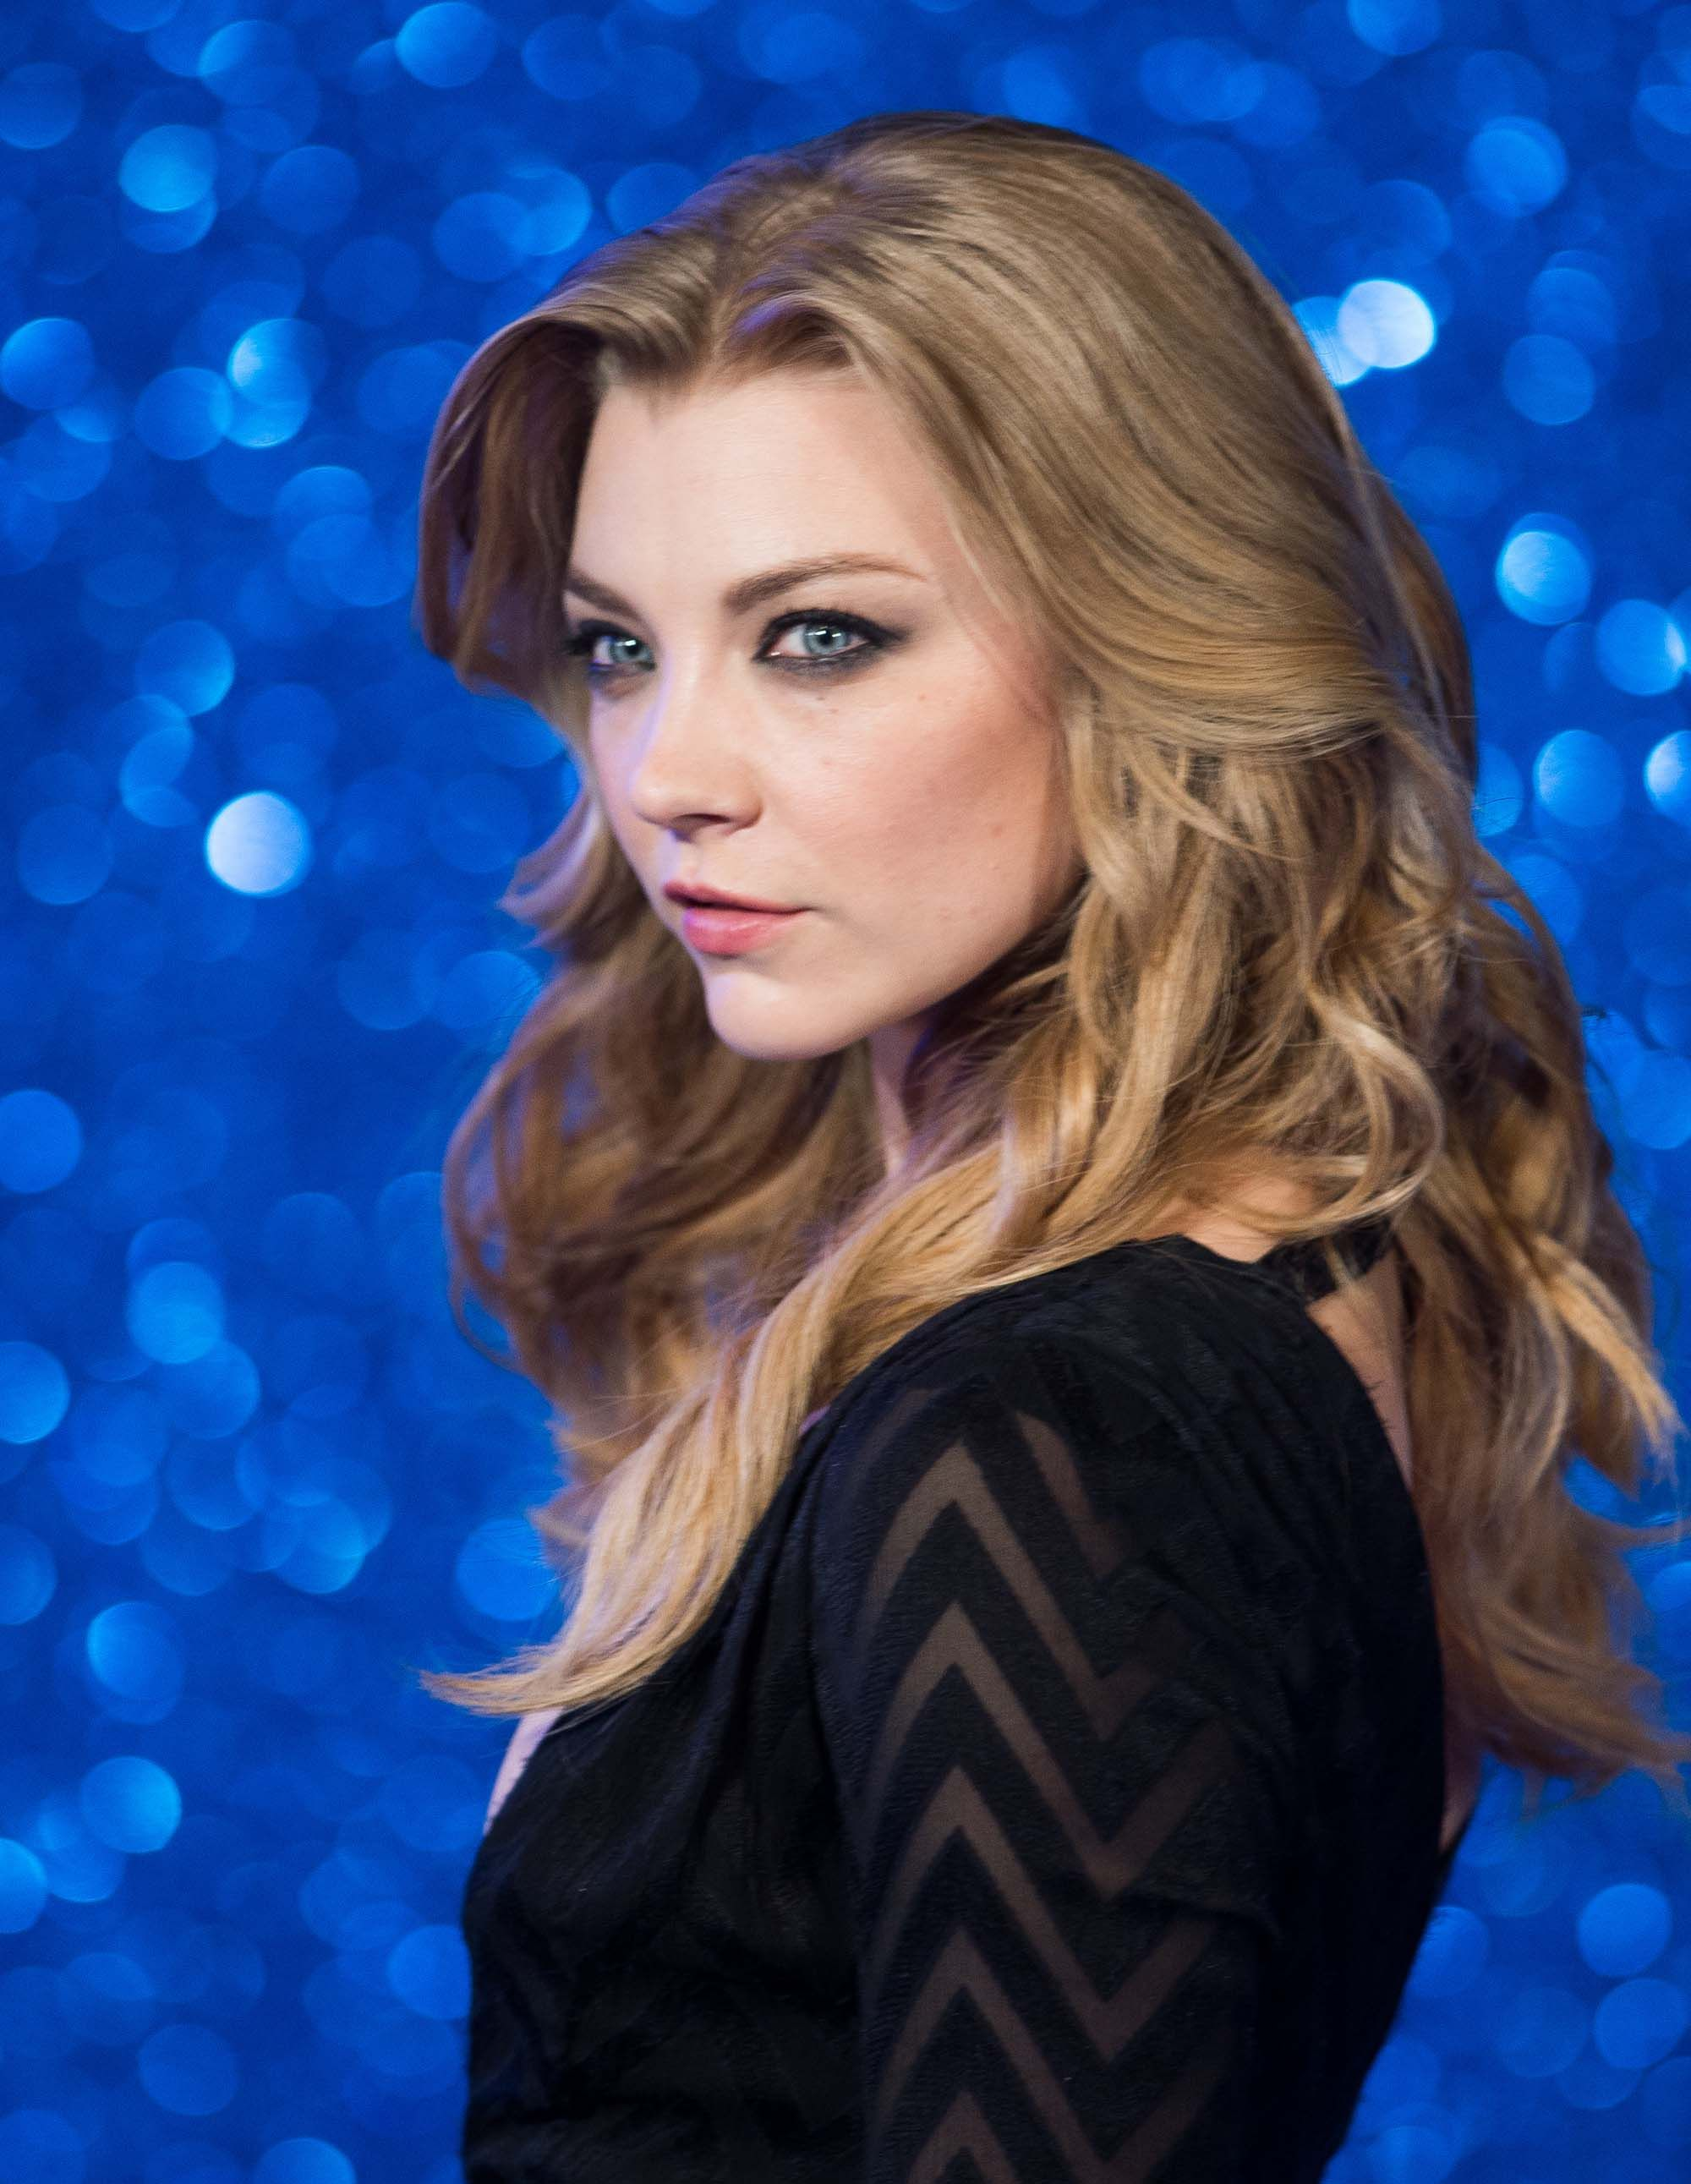 Natalie Dormer who dated who